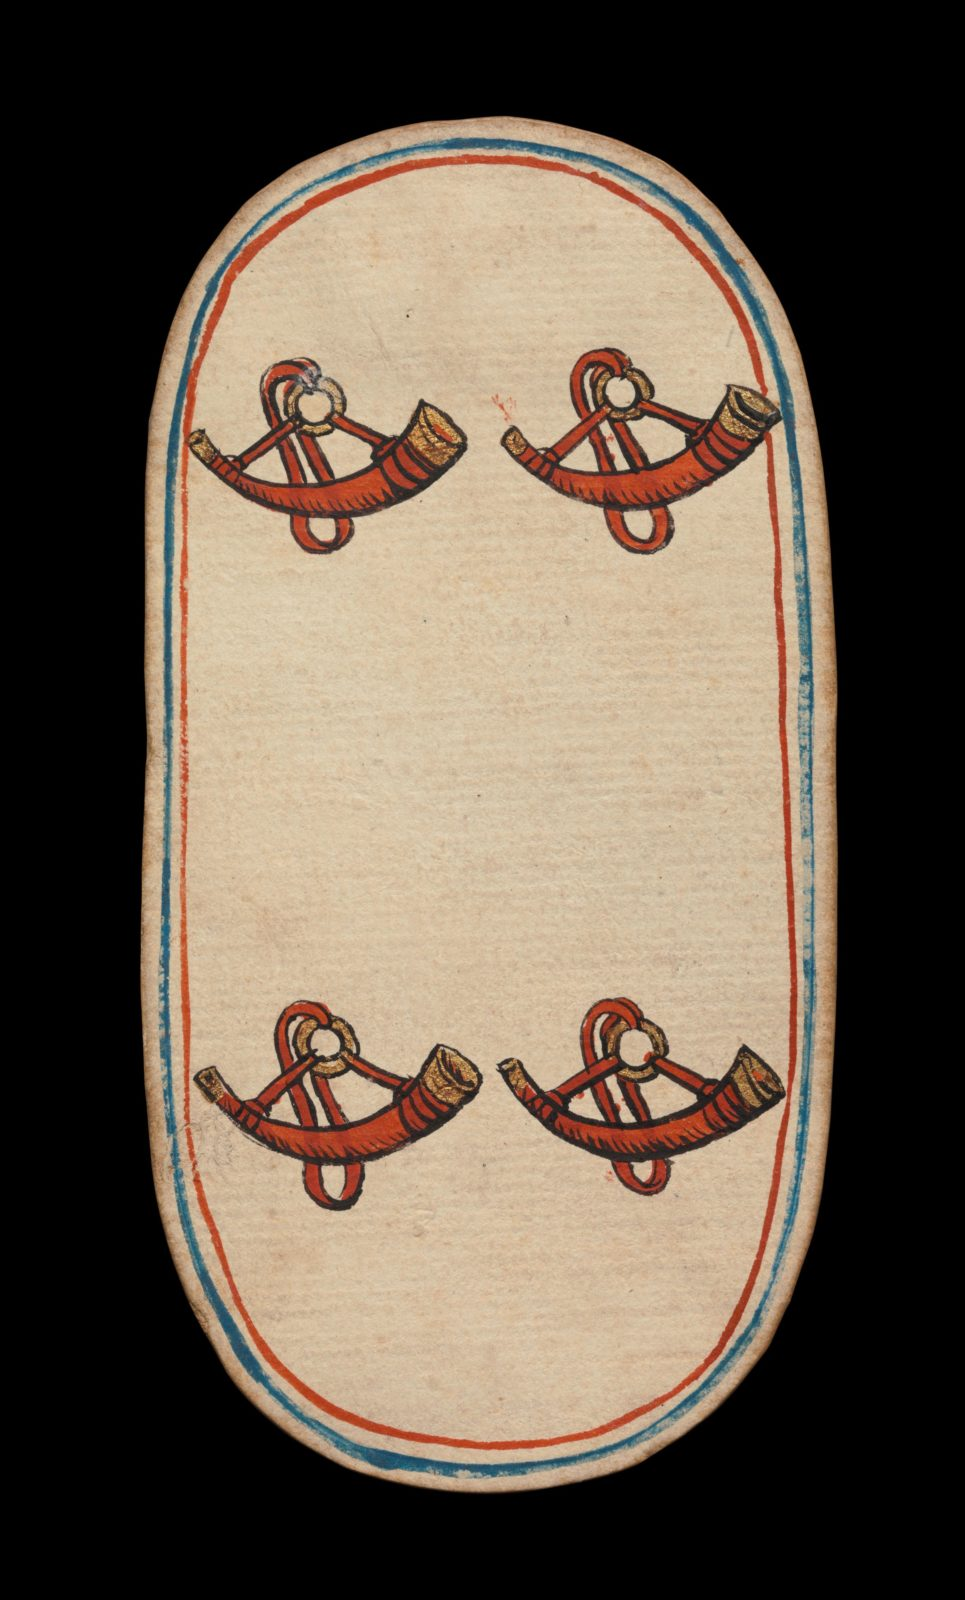 4 of Horns, from The Cloisters Playing Cards